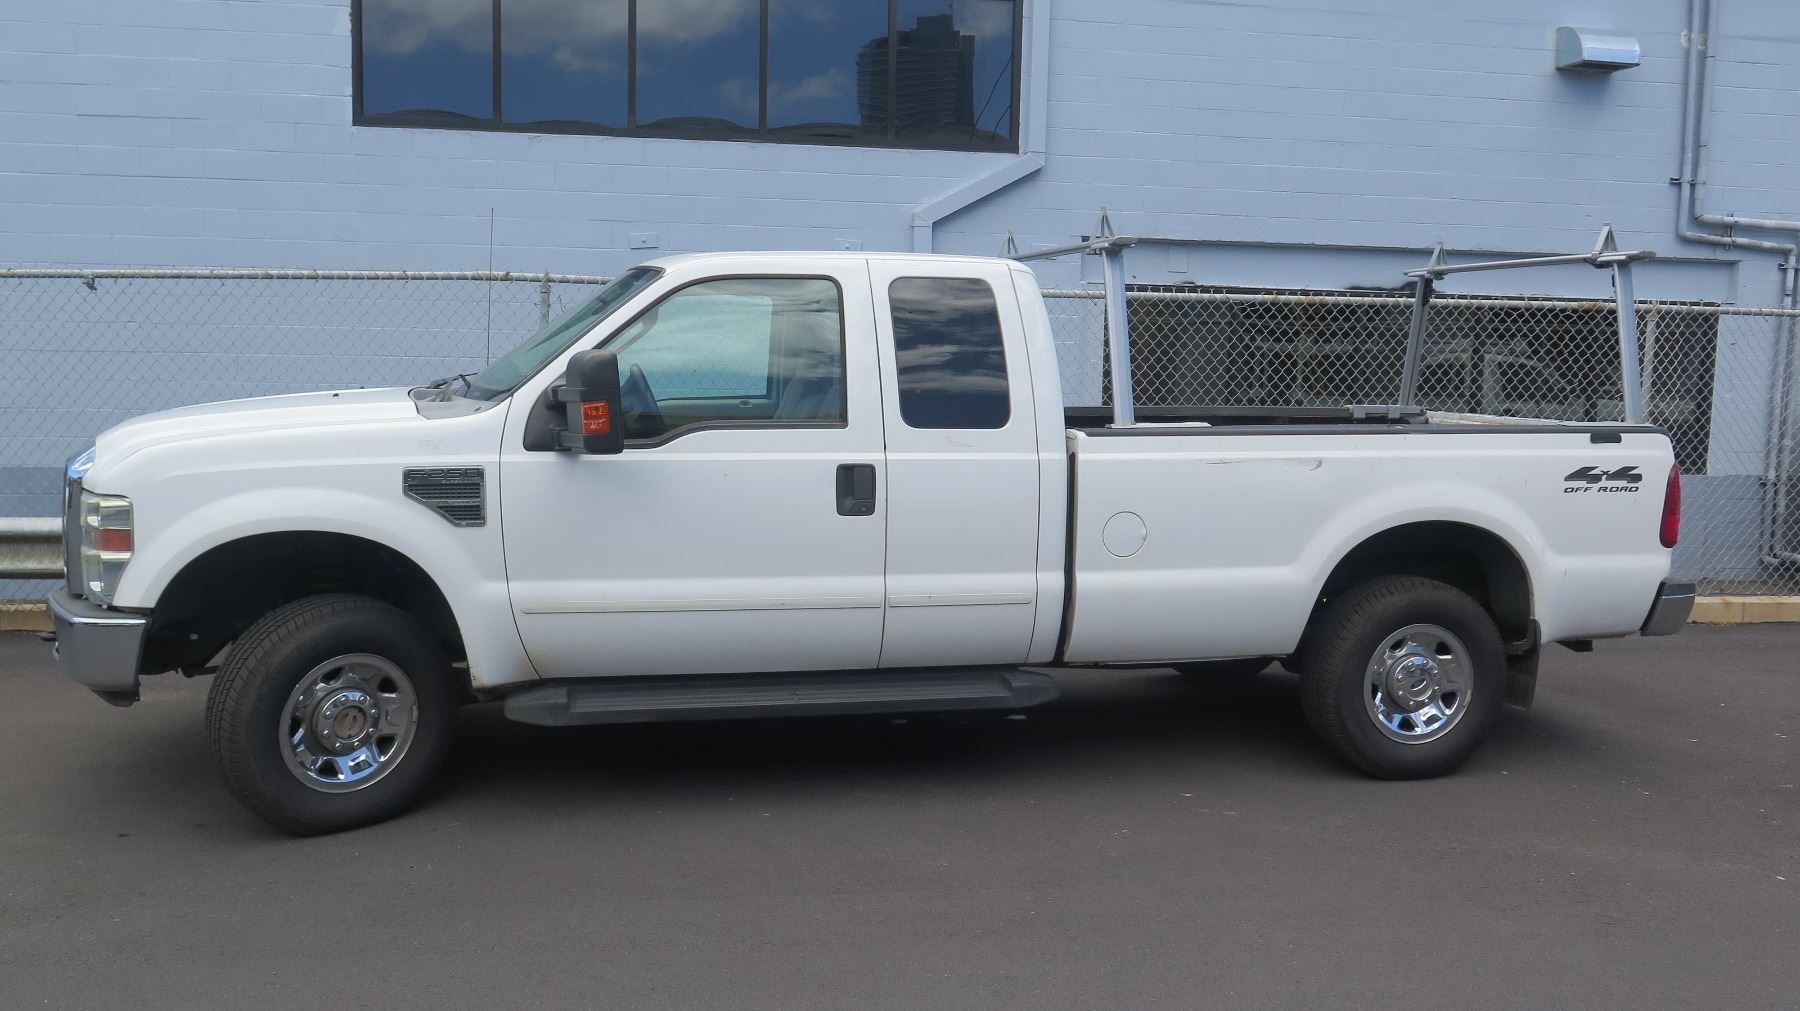 Video Image 1 2017 Ford F250 Work Truck 4x4 Crew Cab Rox 91 021 Miles